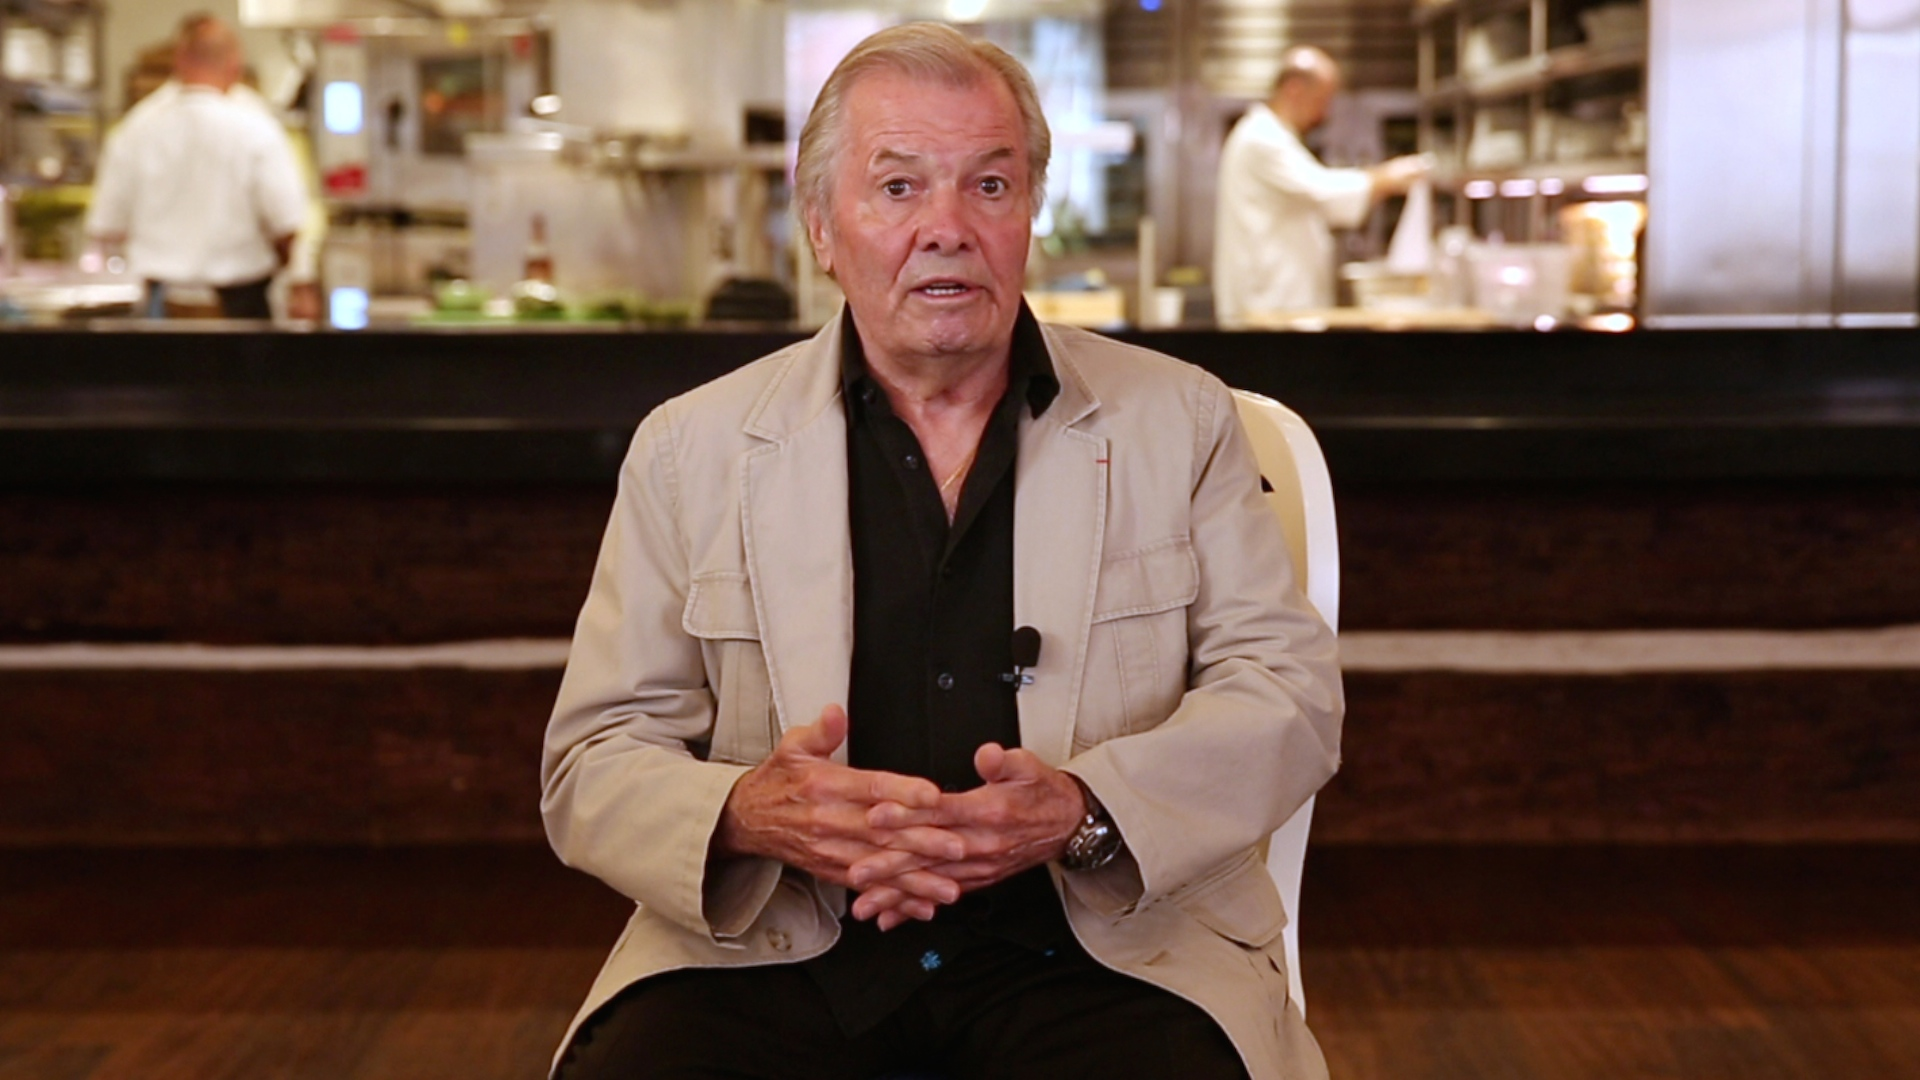 Jacques Pépin: Becoming a Chef